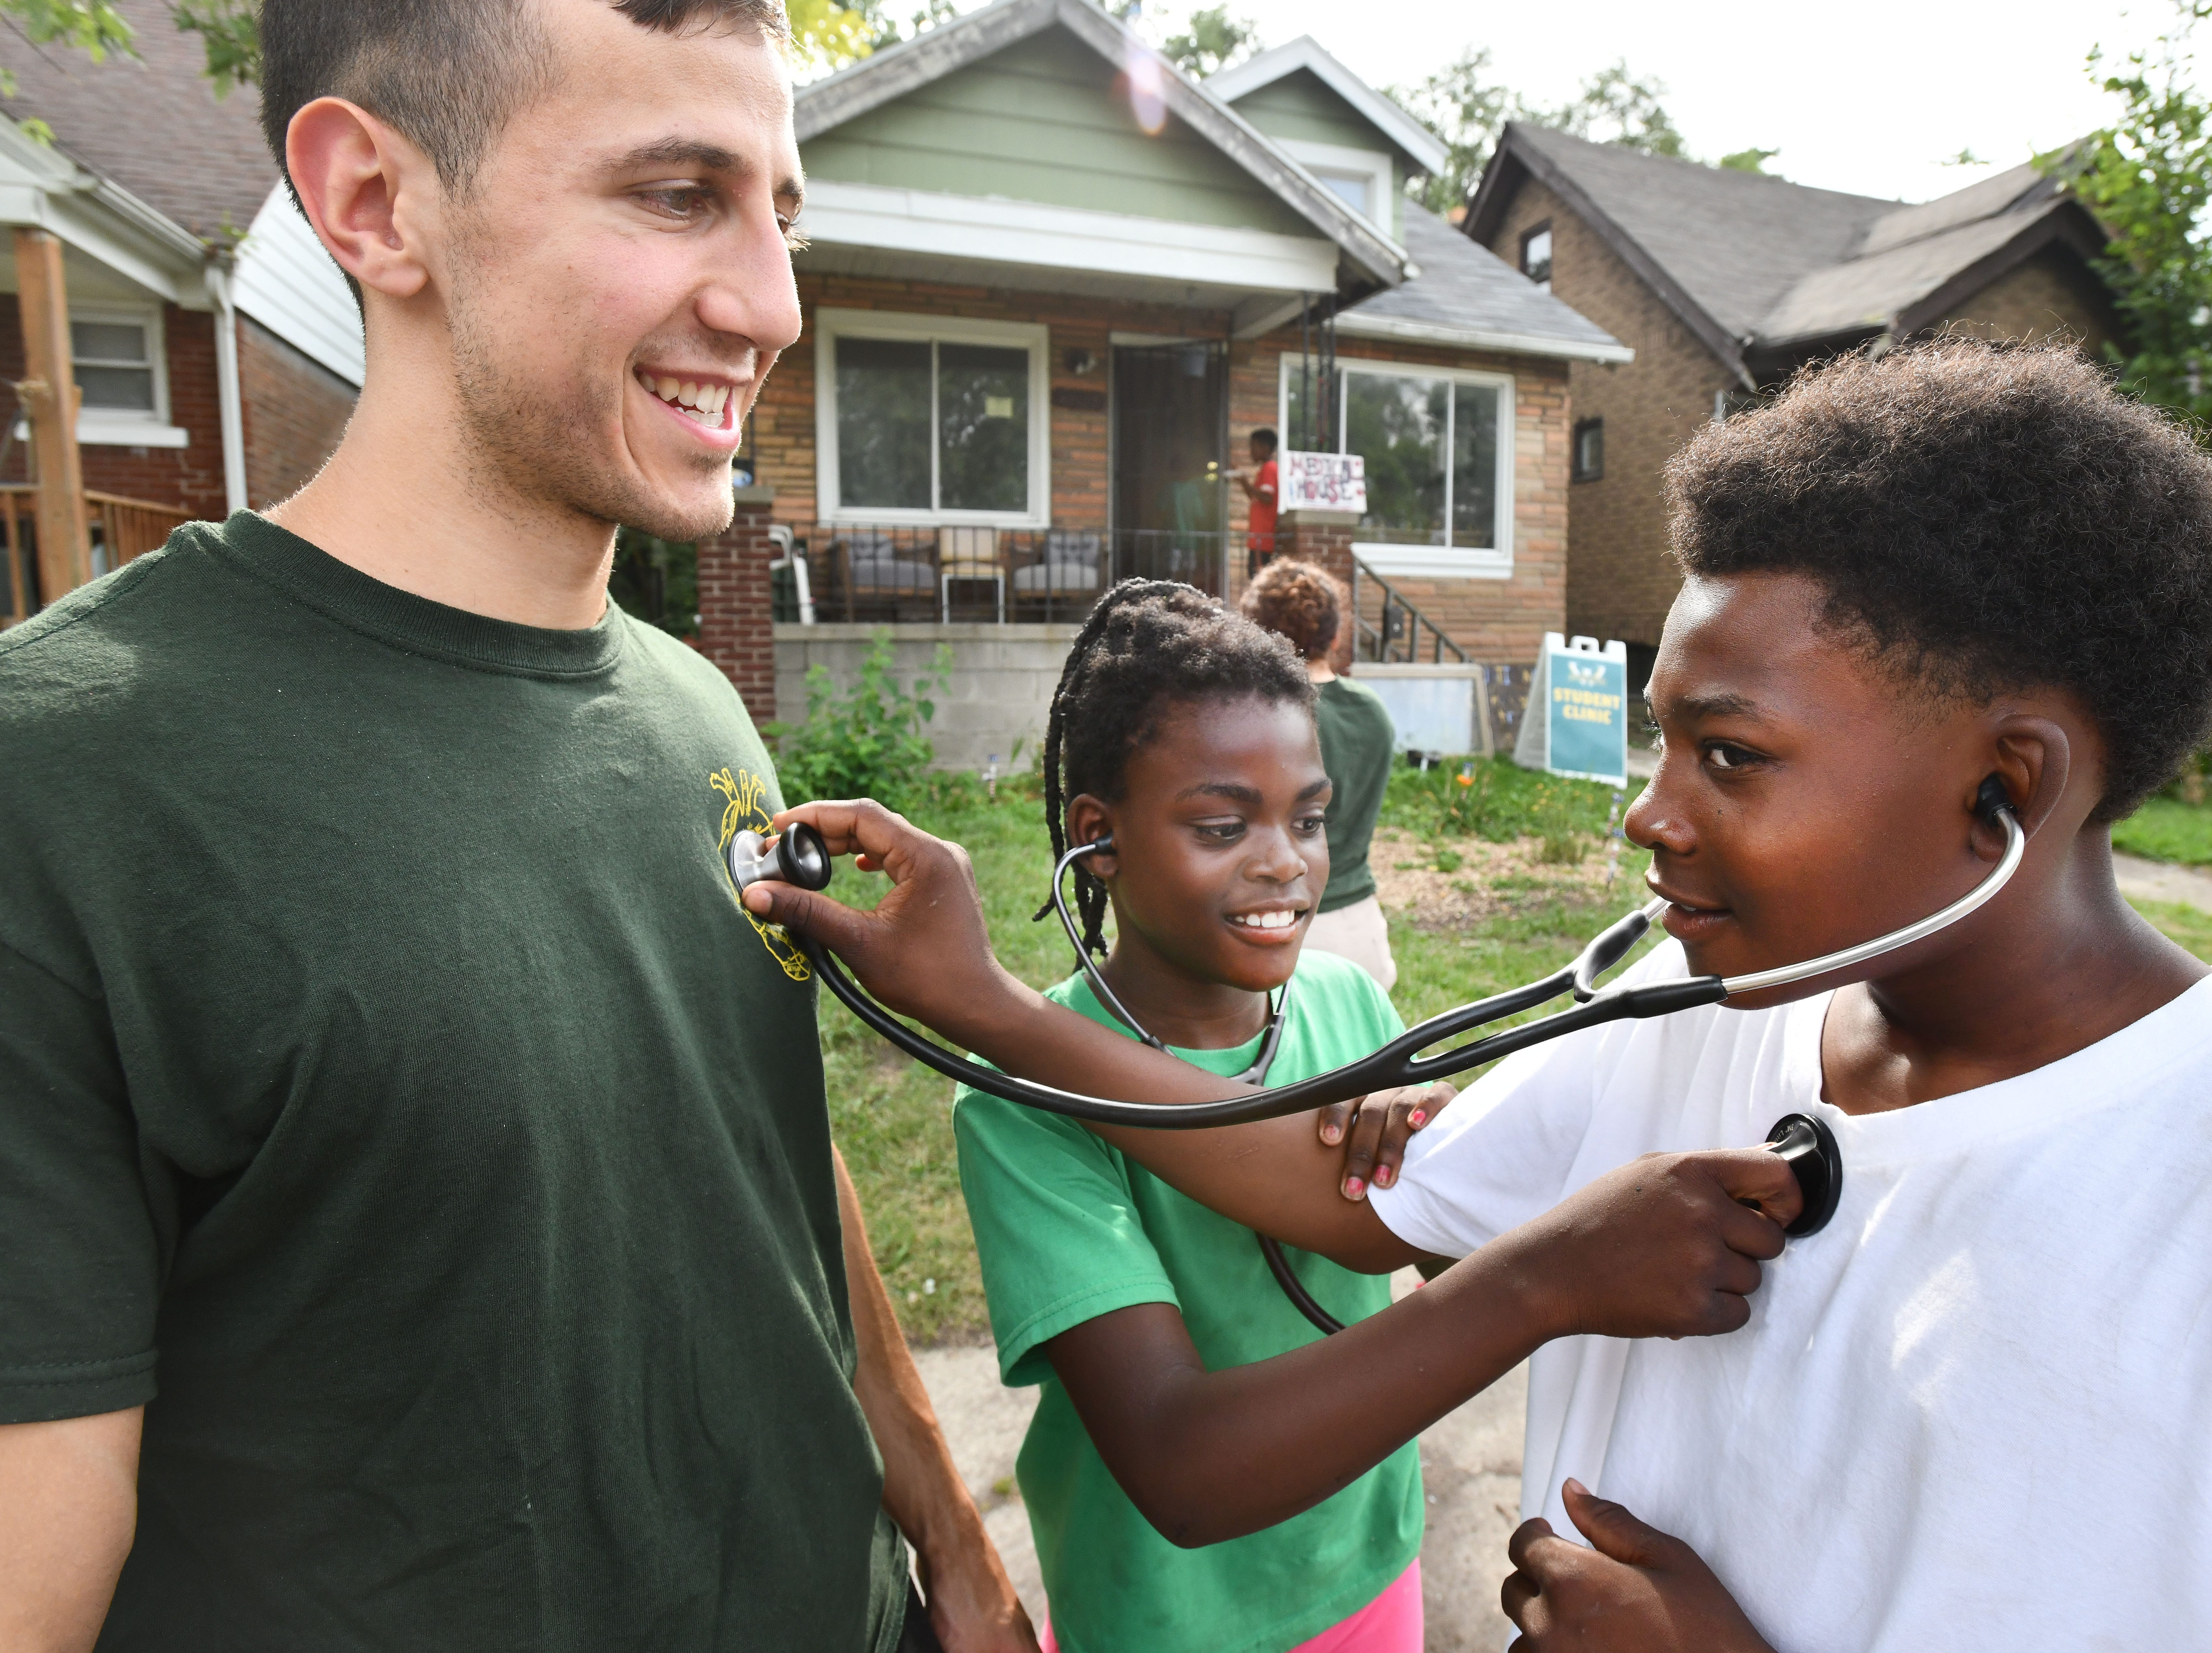 WSU medical student Ali Dakka lets Justin Brown use his stethoscope, listening for a heartbeat, as Jiya Brown, 10, listens for Justin's heartbeat, on August 8, 2018. Wayne State medical students set up a clinic as part of the community center known as Auntie Na's House, providing much-needed medical services for the Detroit neighborhood.